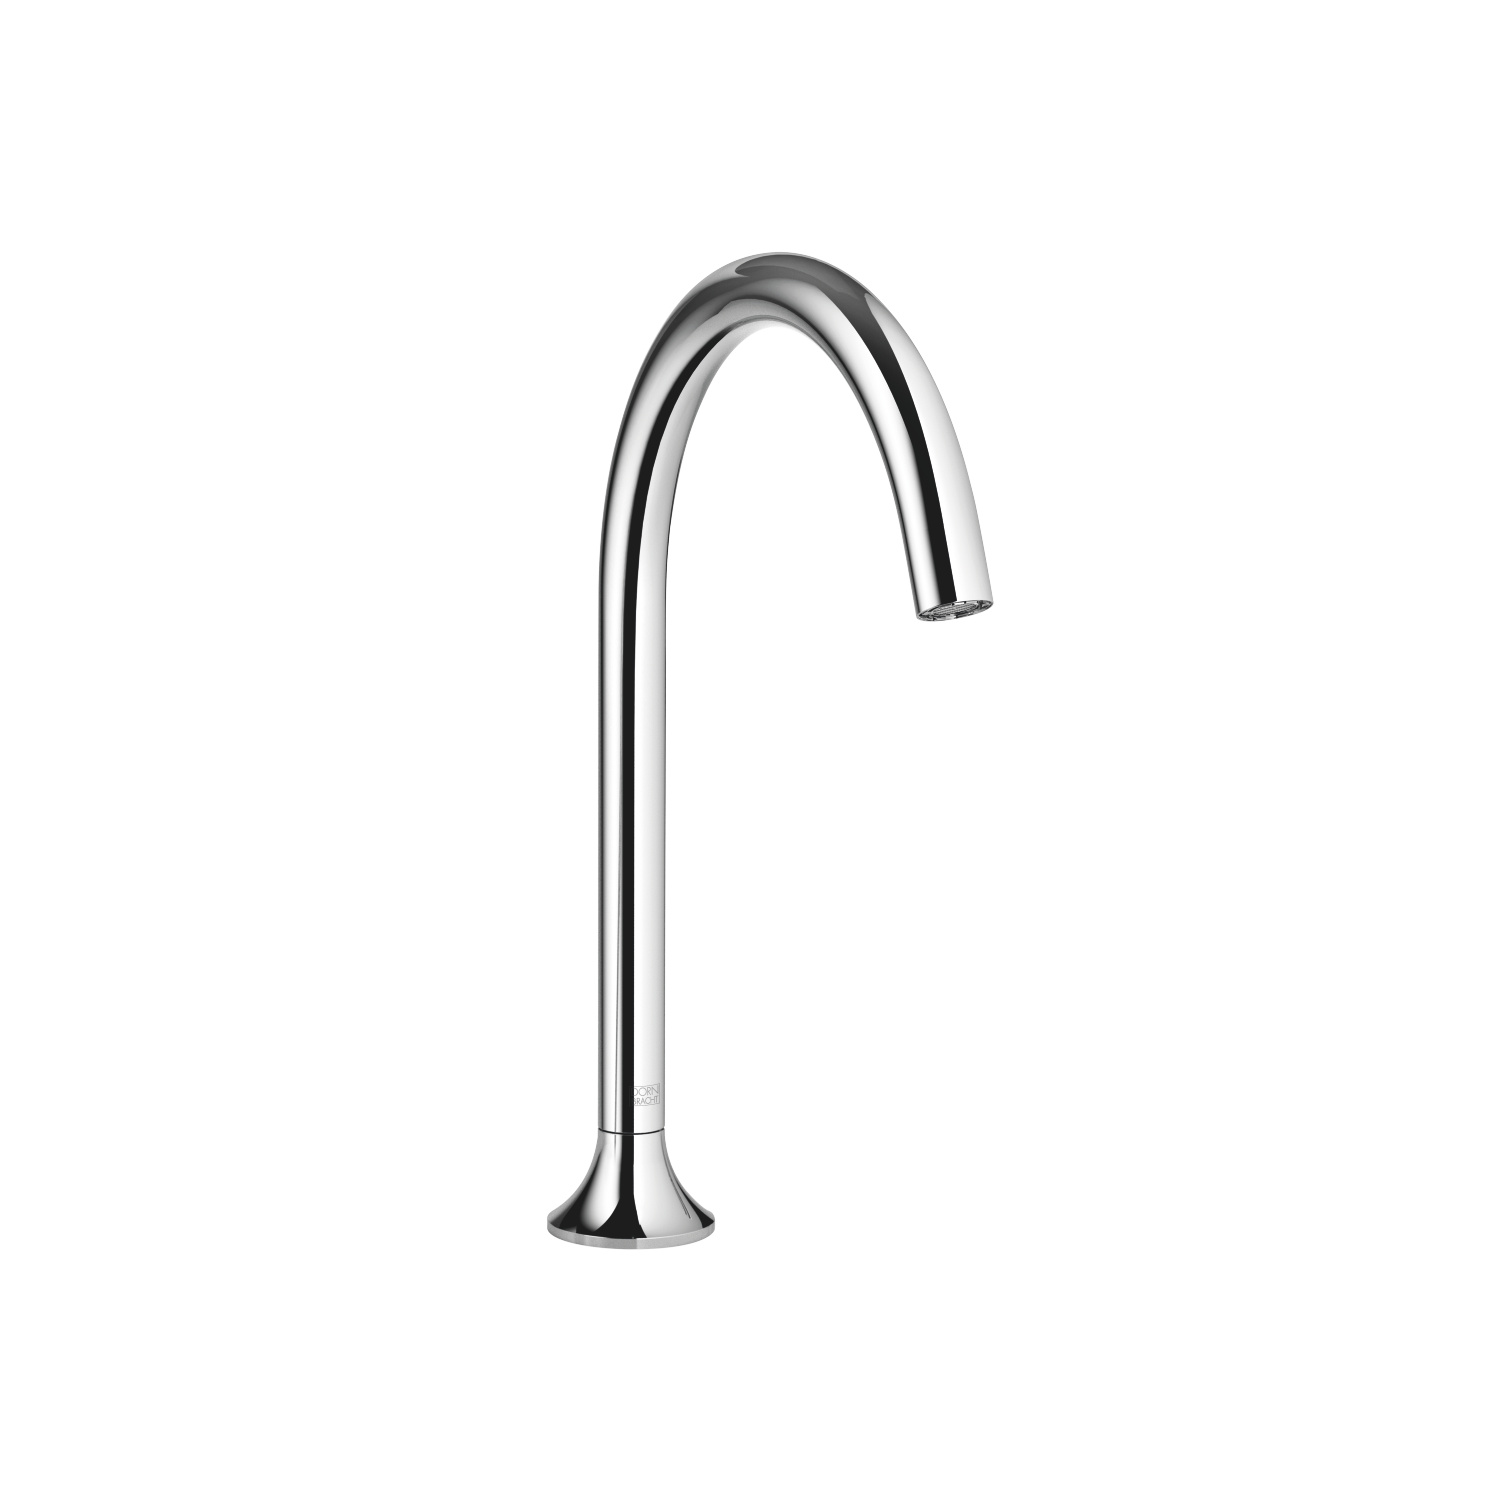 bath spout without diverter for deck mounting - polished chrome